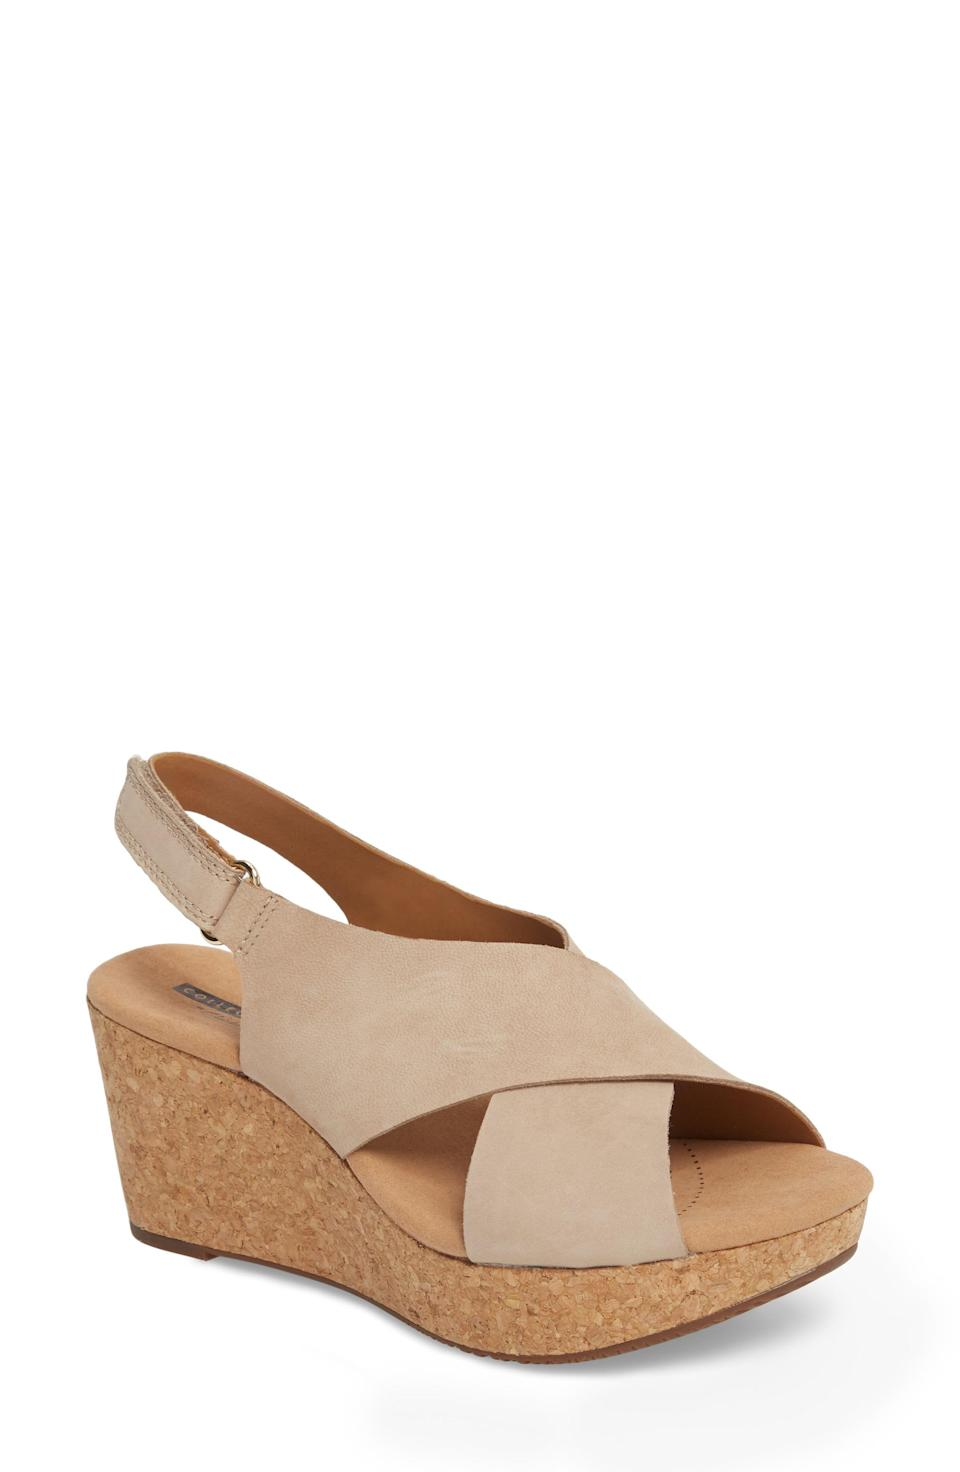 """<p><strong>Clarks</strong></p><p>nordstrom.com</p><p><strong>$69.95</strong></p><p><a href=""""https://go.redirectingat.com?id=74968X1596630&url=https%3A%2F%2Fwww.nordstrom.com%2Fs%2Fclarks-annadel-eirwyn-wedge-sandal-women%2F5634302&sref=https%3A%2F%2Fwww.prevention.com%2Fbeauty%2Fstyle%2Fg36040203%2Fcomfortable-wedge-sandals%2F"""" rel=""""nofollow noopener"""" target=""""_blank"""" data-ylk=""""slk:SHOP NOW"""" class=""""link rapid-noclick-resp"""">SHOP NOW</a></p><p>Cork wedges are known for offering <strong>great cushioning and shock absorption</strong>—and that's exactly what you'll get with this pair from Clarks (a brand known for comfy shoes). The cushioned footbed will support your feet all day long, and the leather straps won't pinch. </p>"""